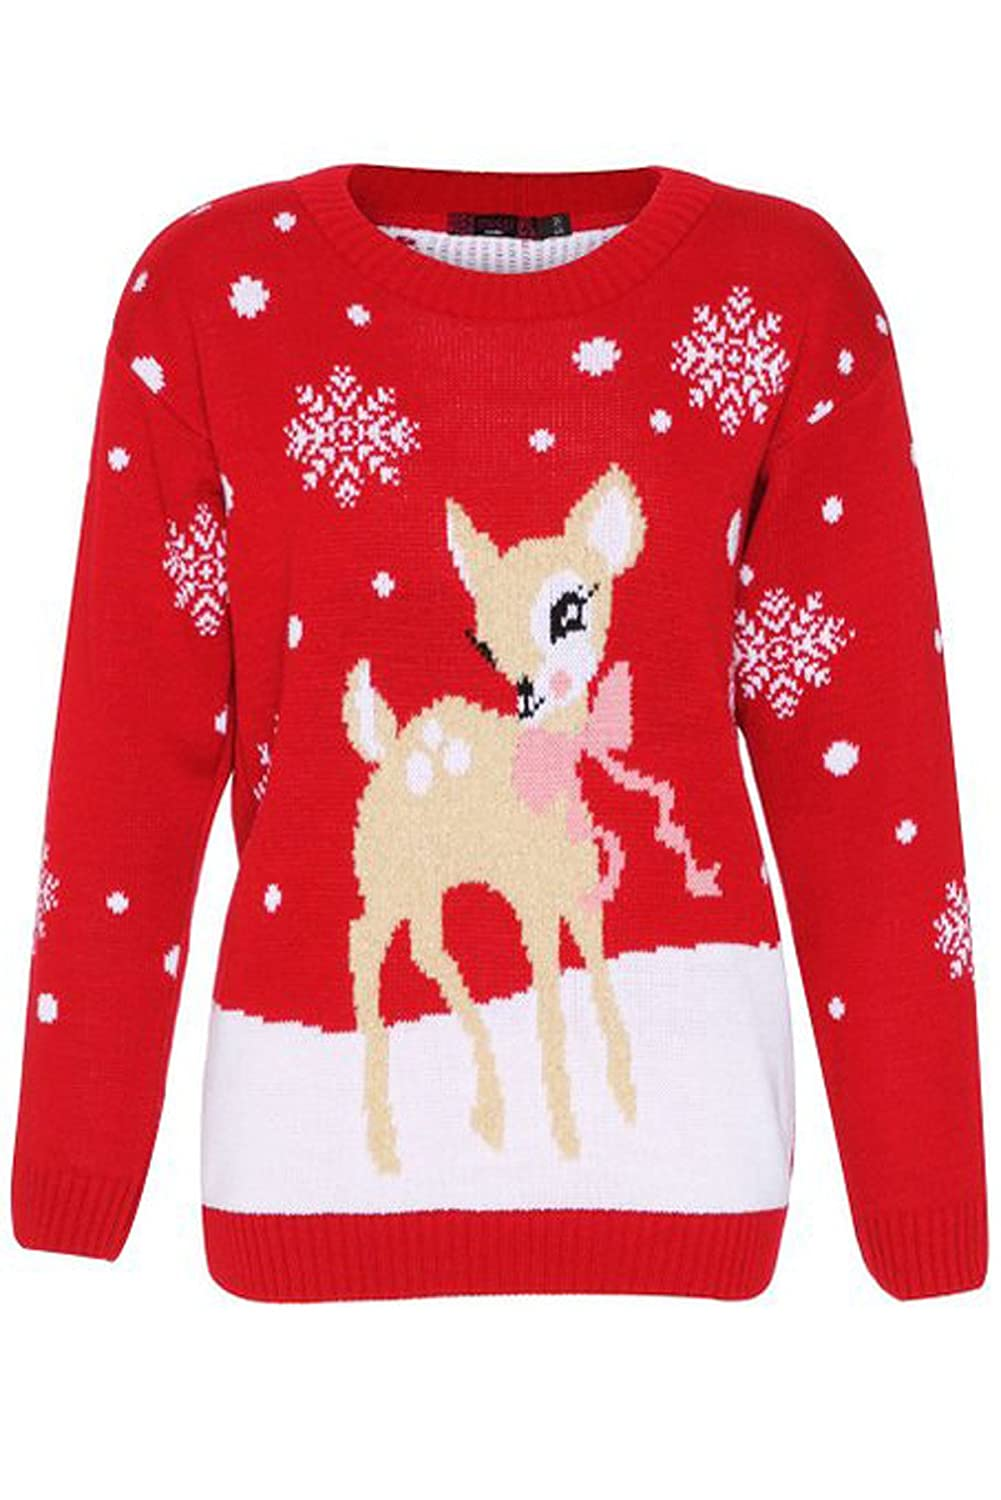 Girlzwalk ® Girls Christmas Novelty Baby Deer Print Knitted Jumper